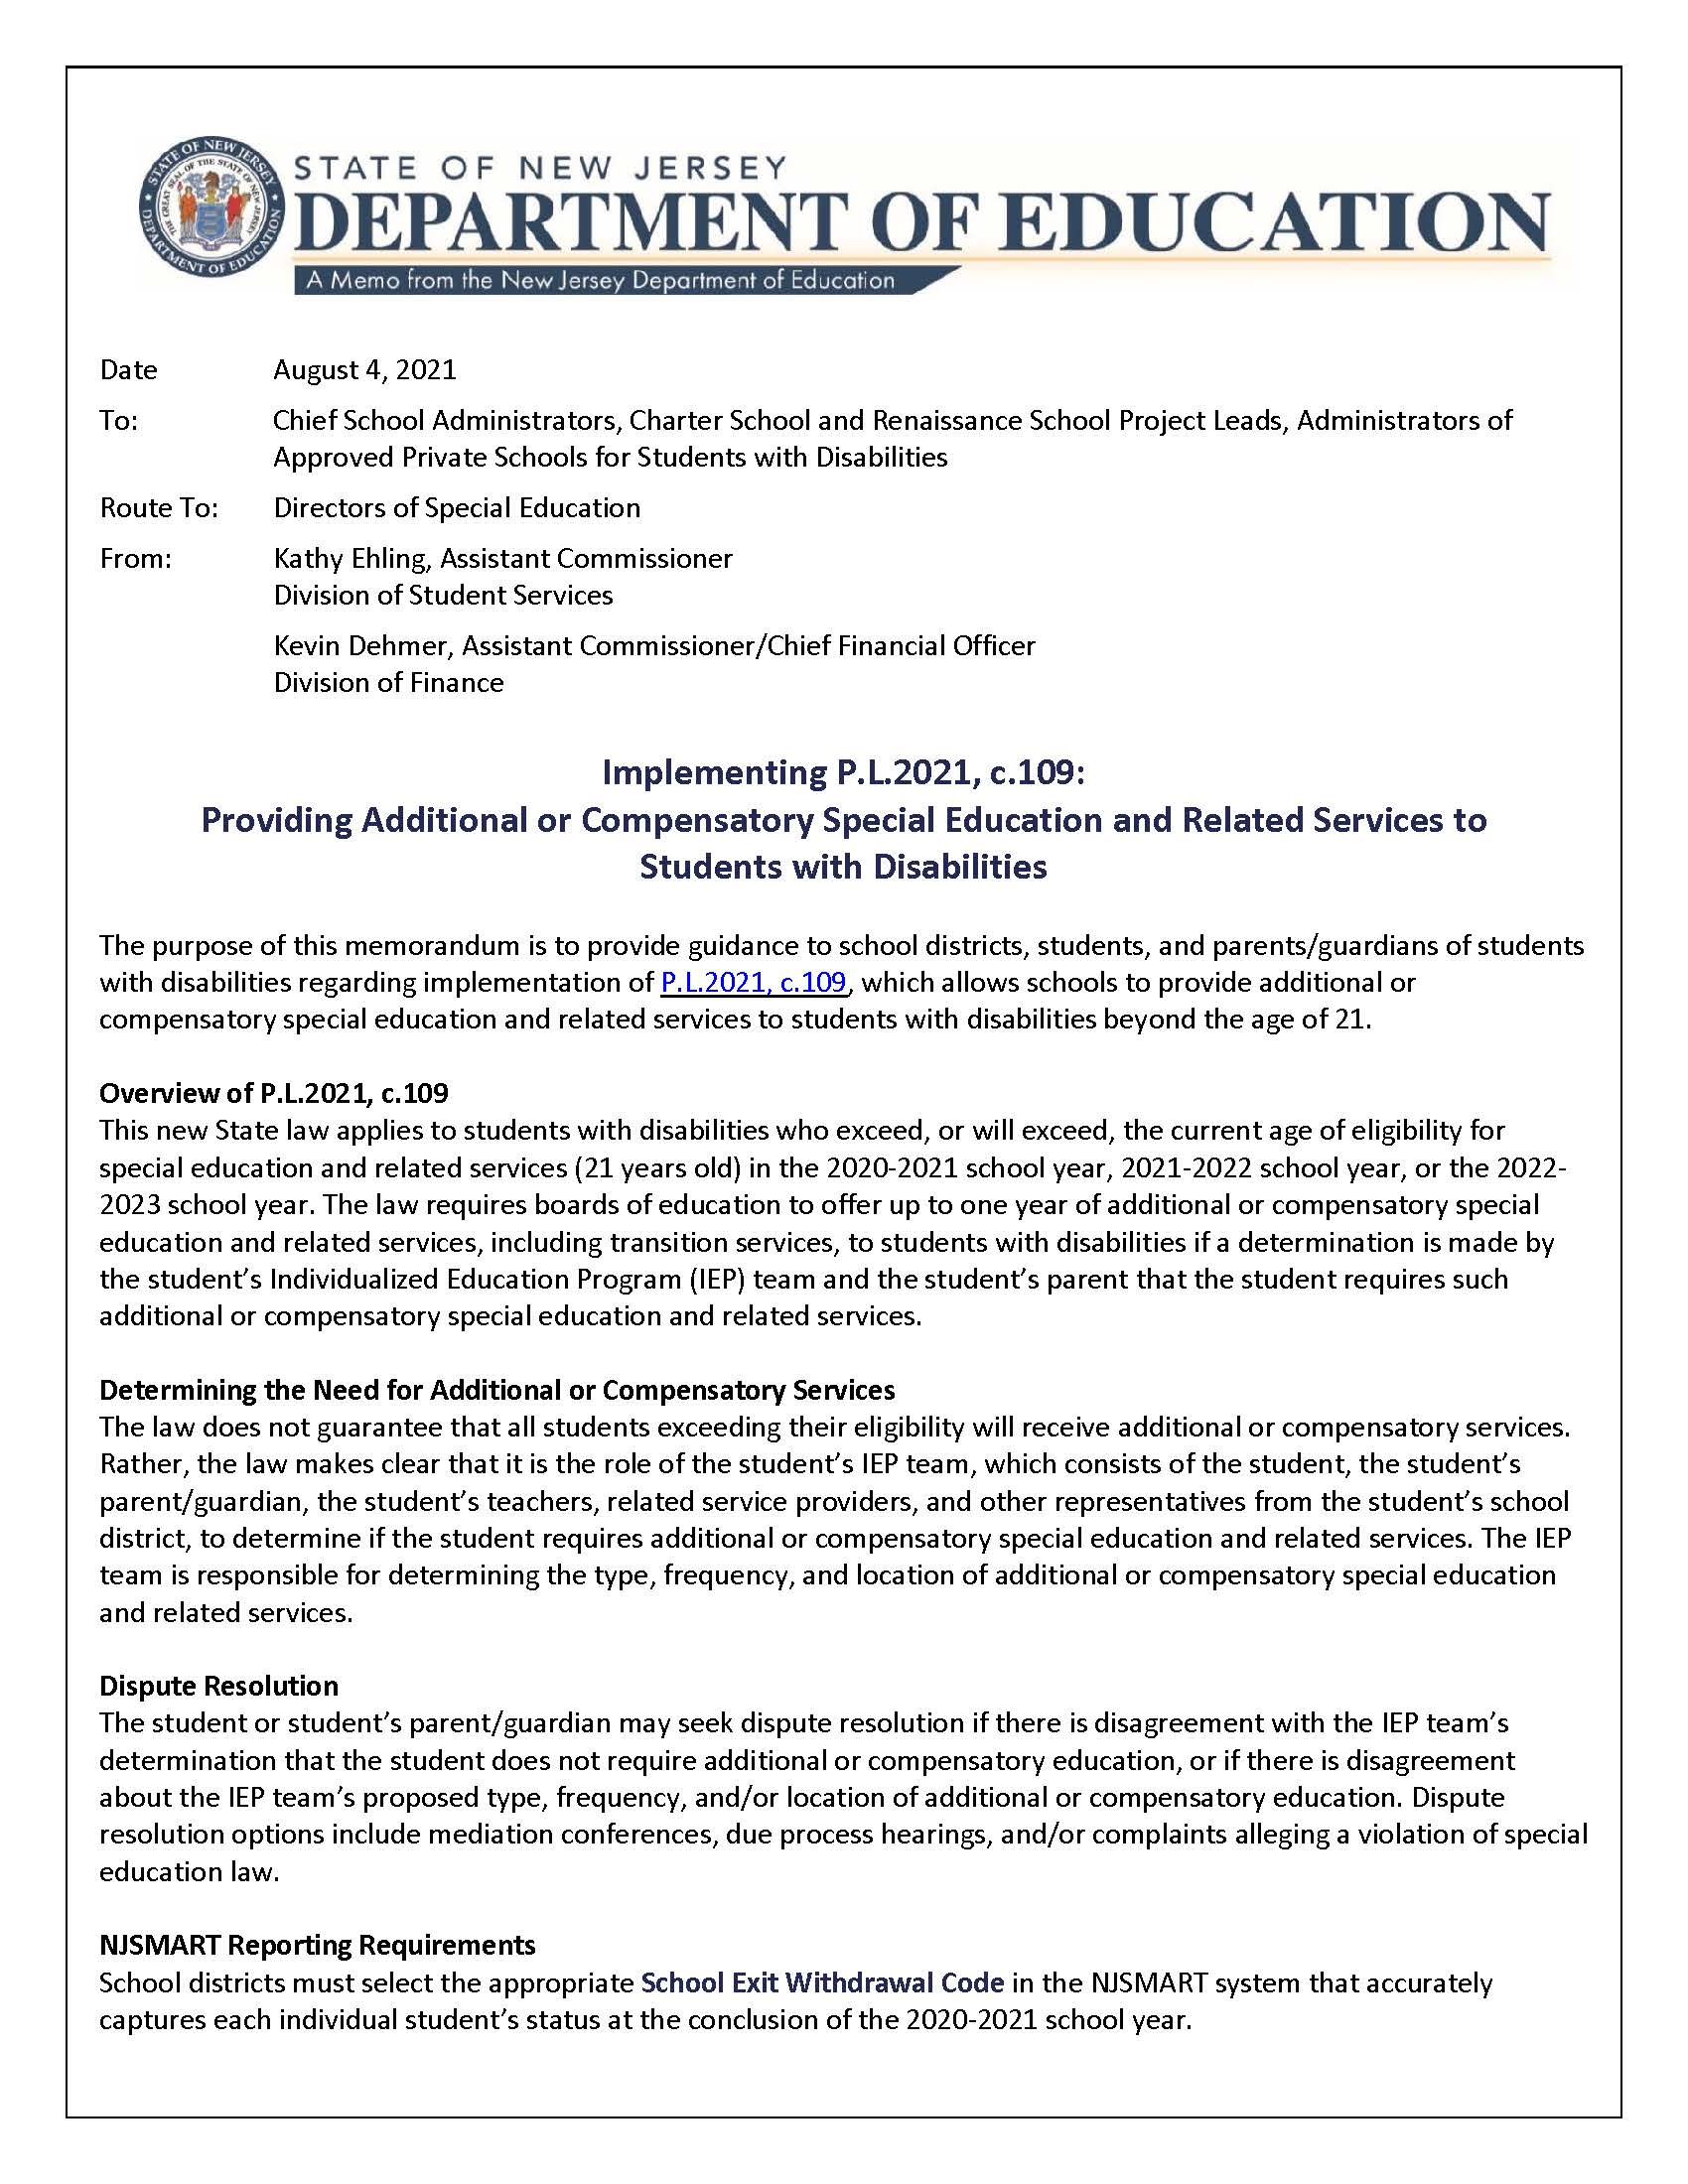 NJ DOE Guidance on Providing Additional Compensatory Special Education and Related Services to Students with Disabilities